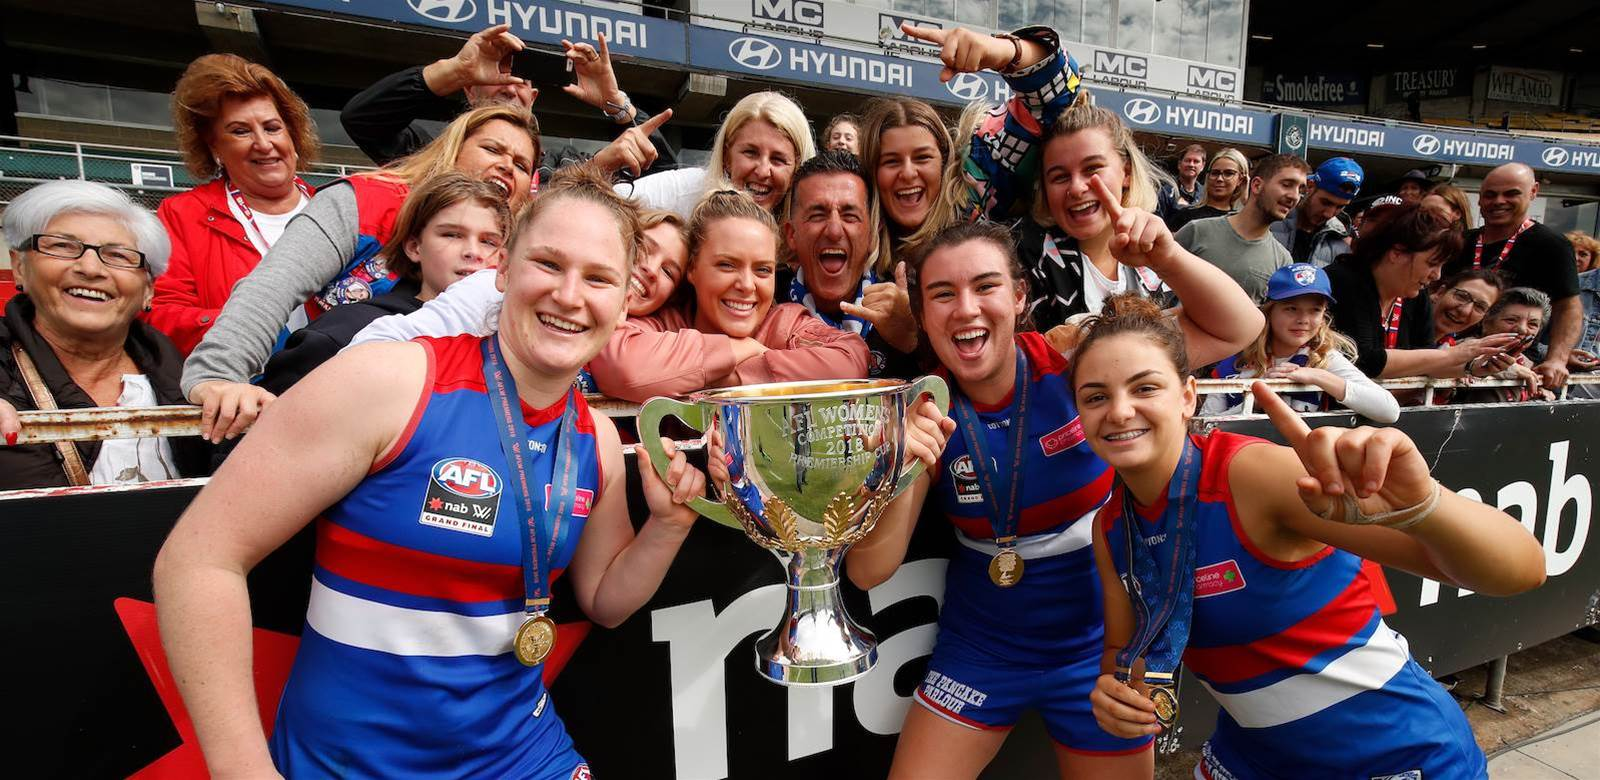 2019 AFLW Fantasy Tips: Friday 15th February